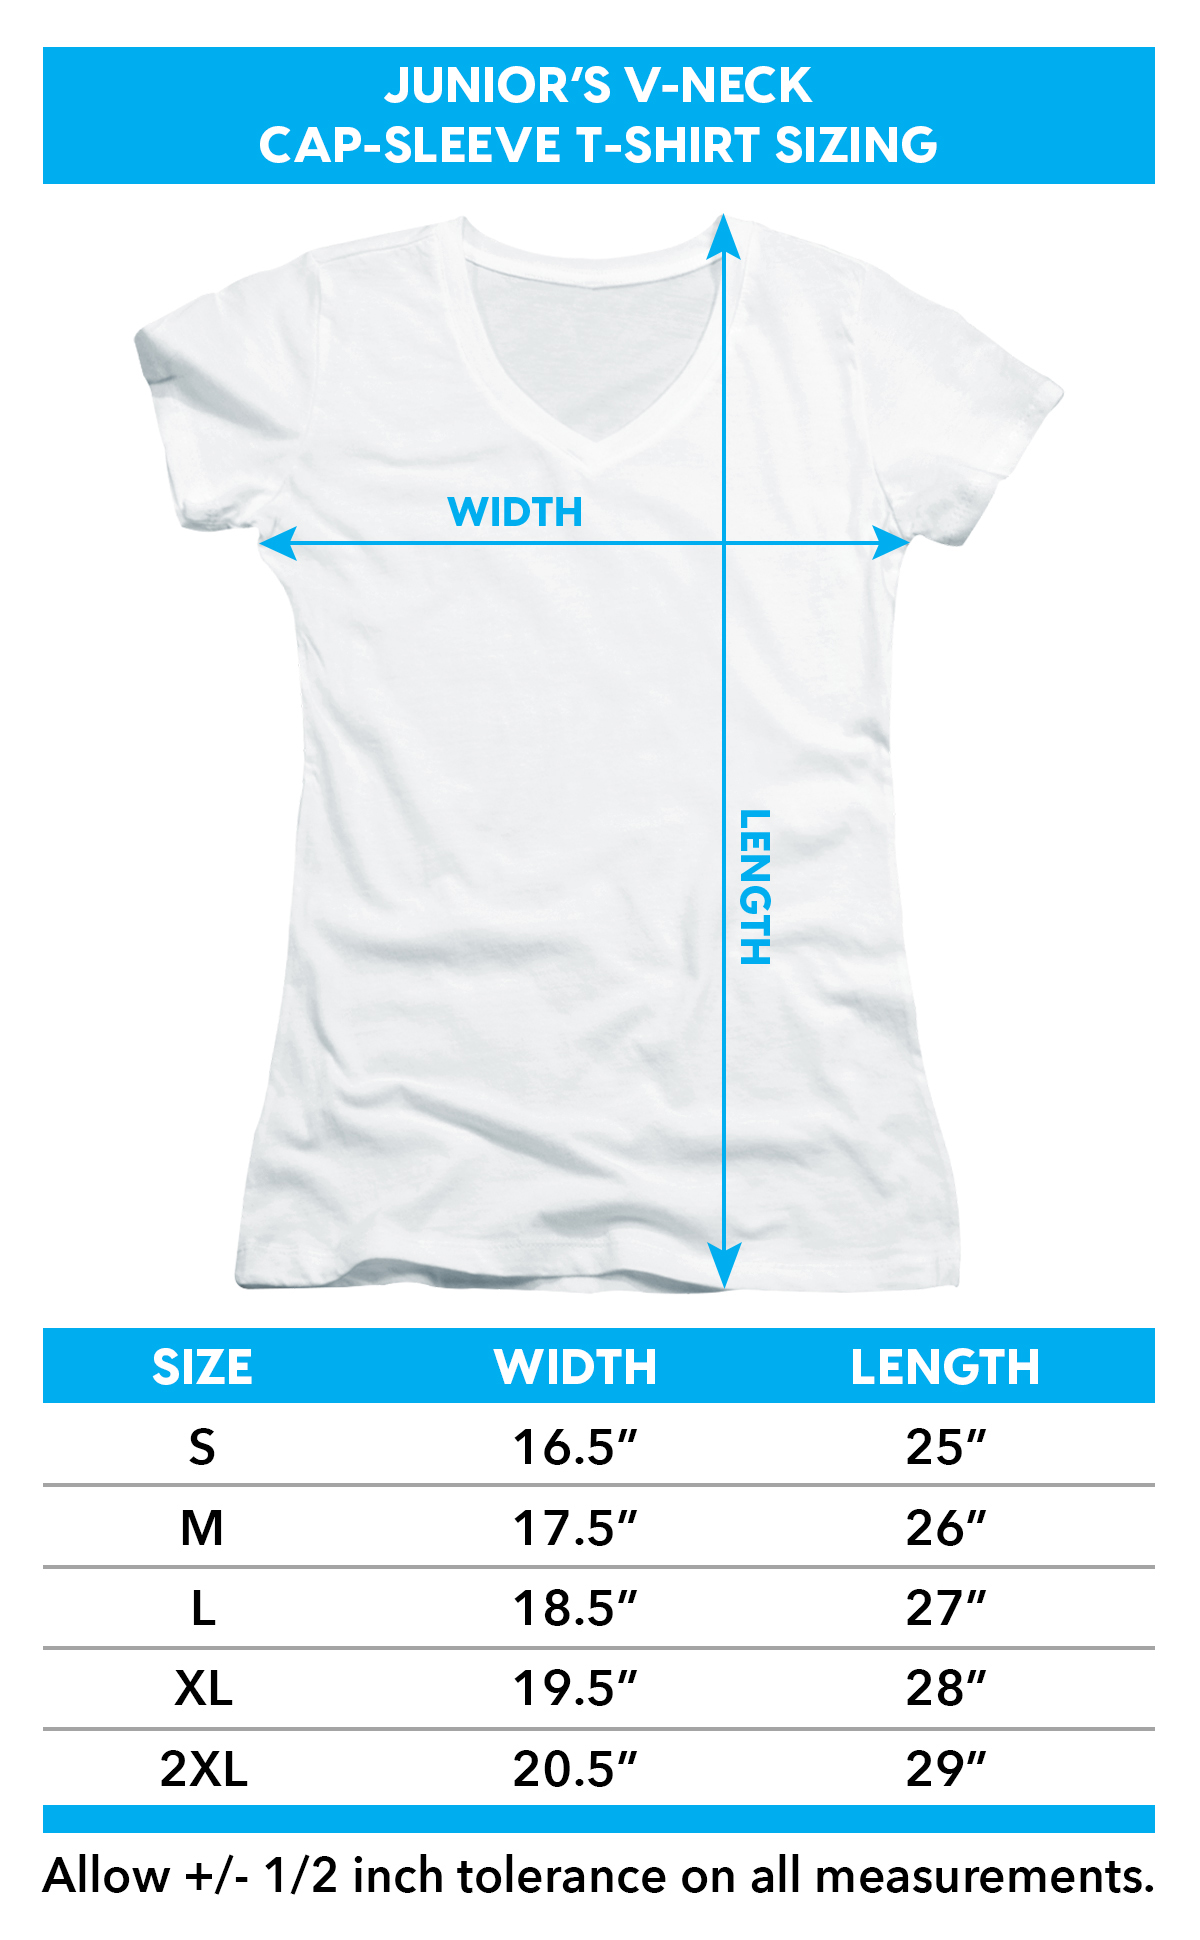 Sizing chart for Edward Scissorhands Girls V Neck - Not Complete TRV-TCF120-JV